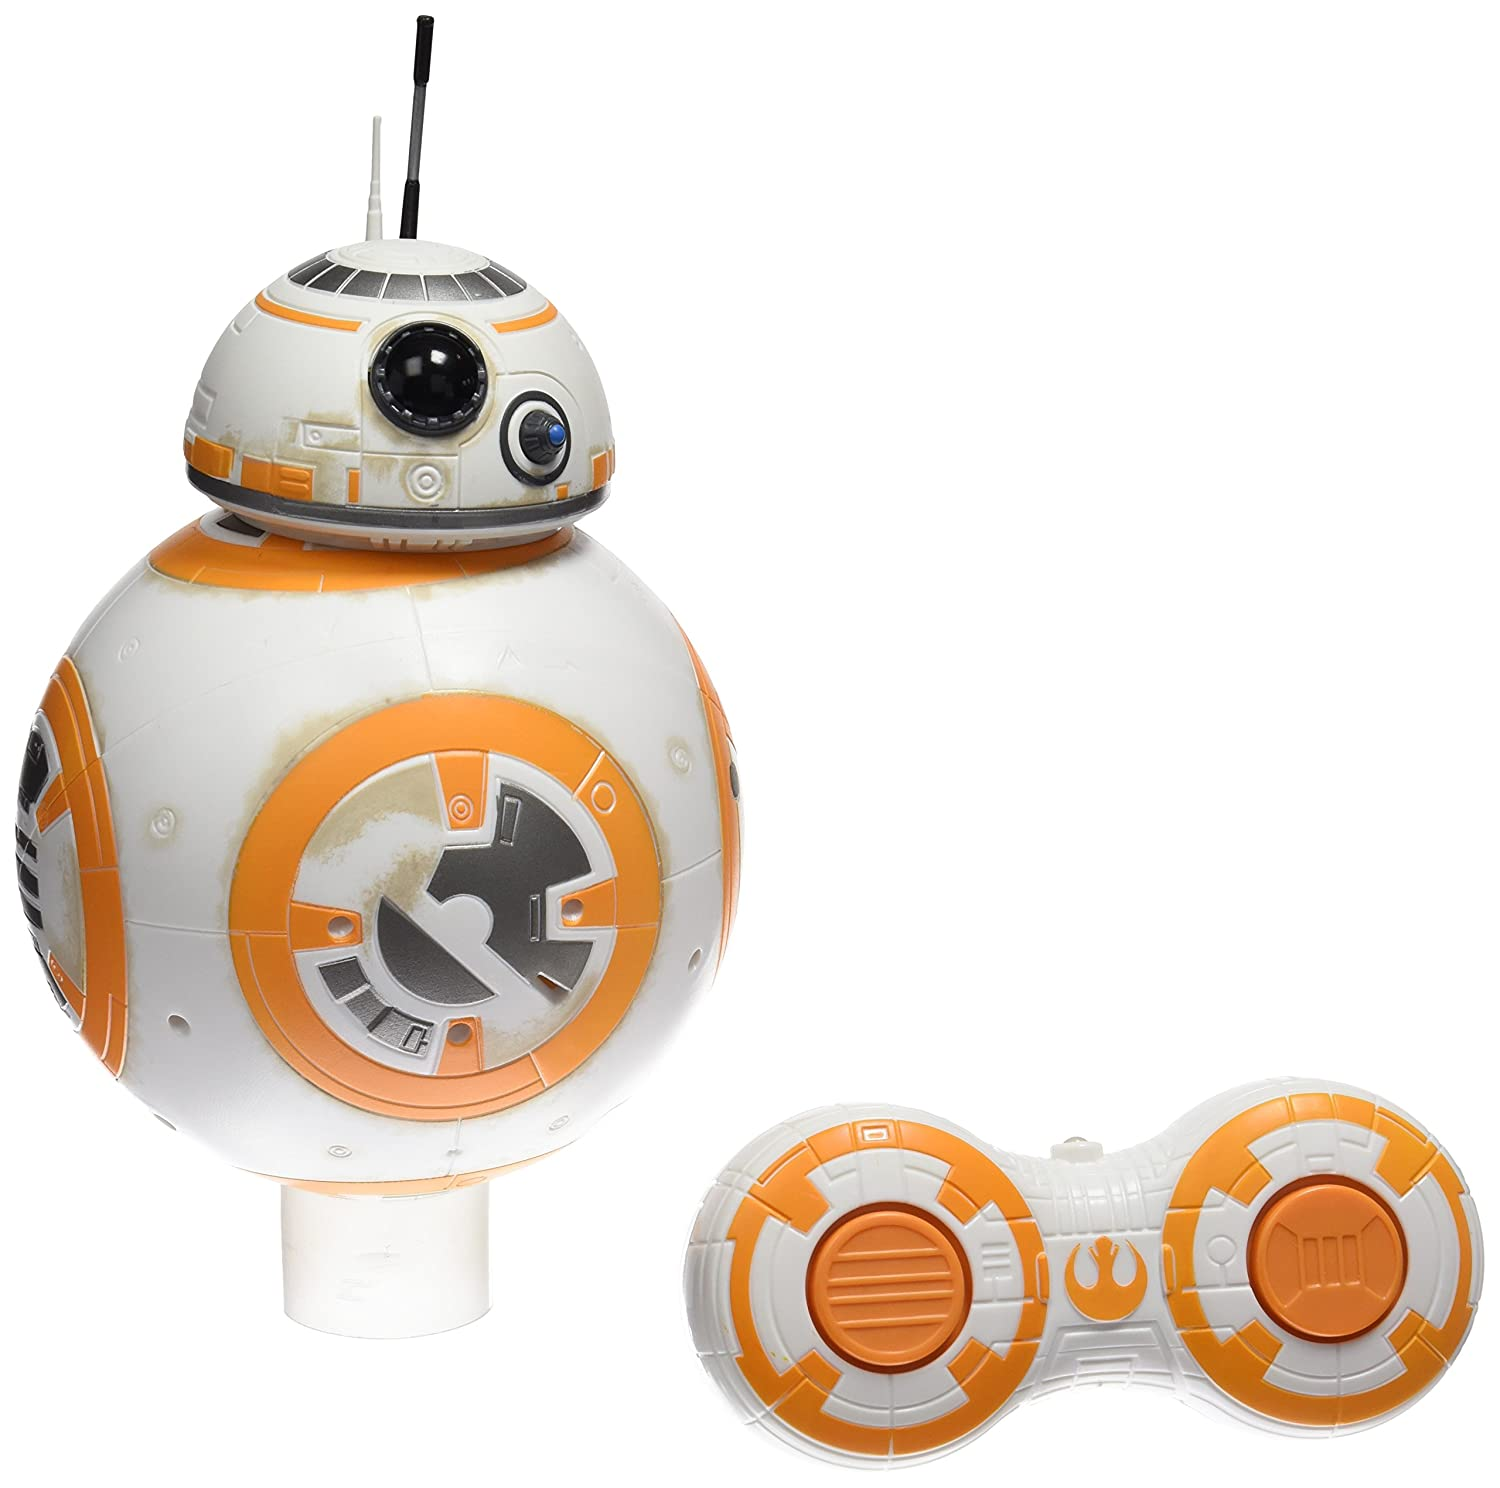 Star Wars E7- BB-8 Radiocomandato per 81,71€ (invece di 114,90€) - amazon.it